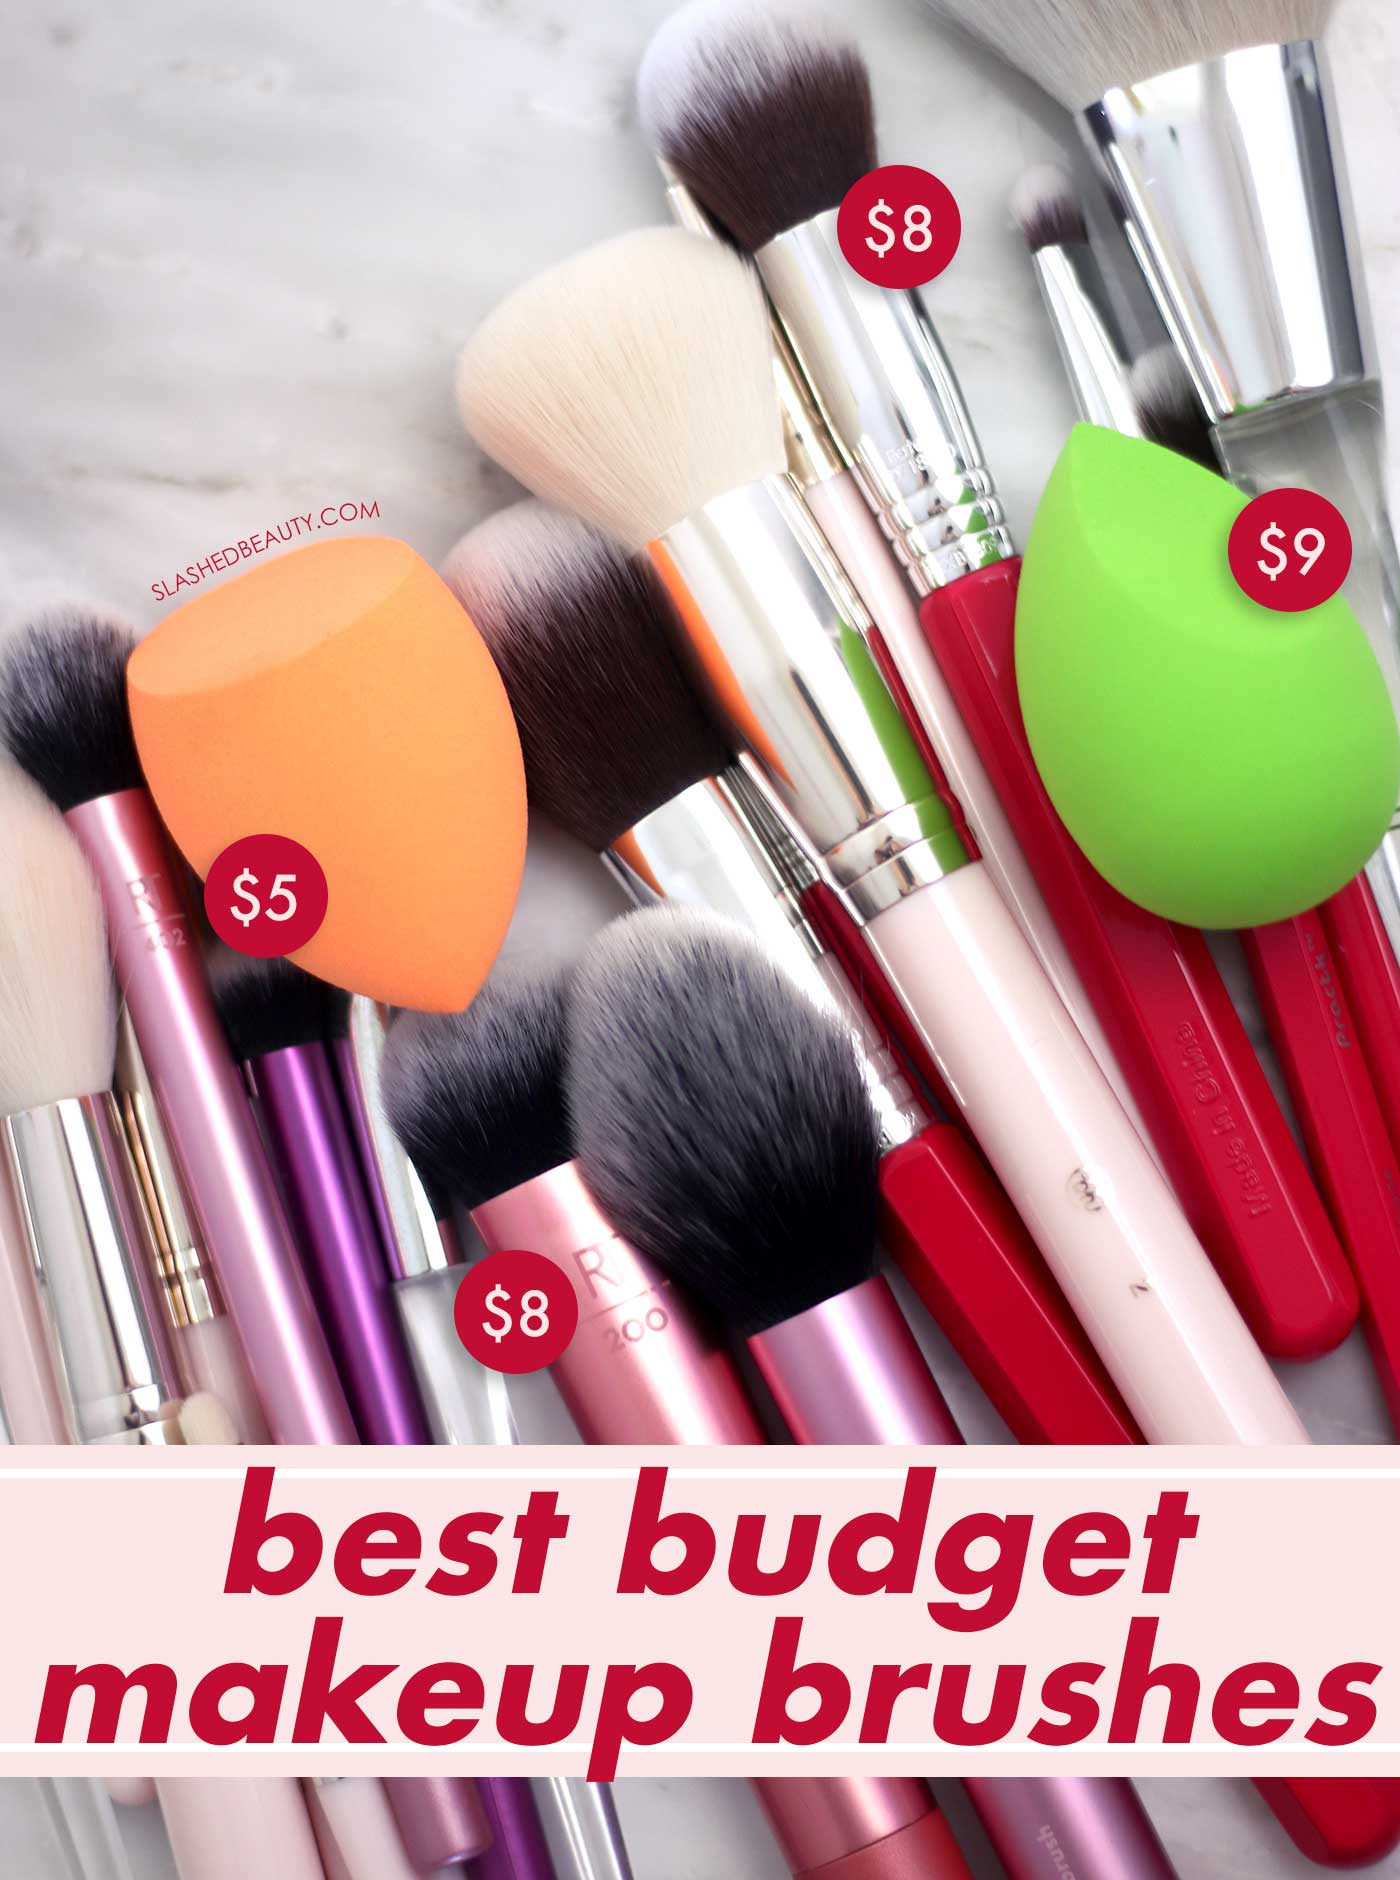 These 4 Brands Make the Best Budget Makeup Brushes | Best Cheap Makeup Brushes | Slashed Beauty